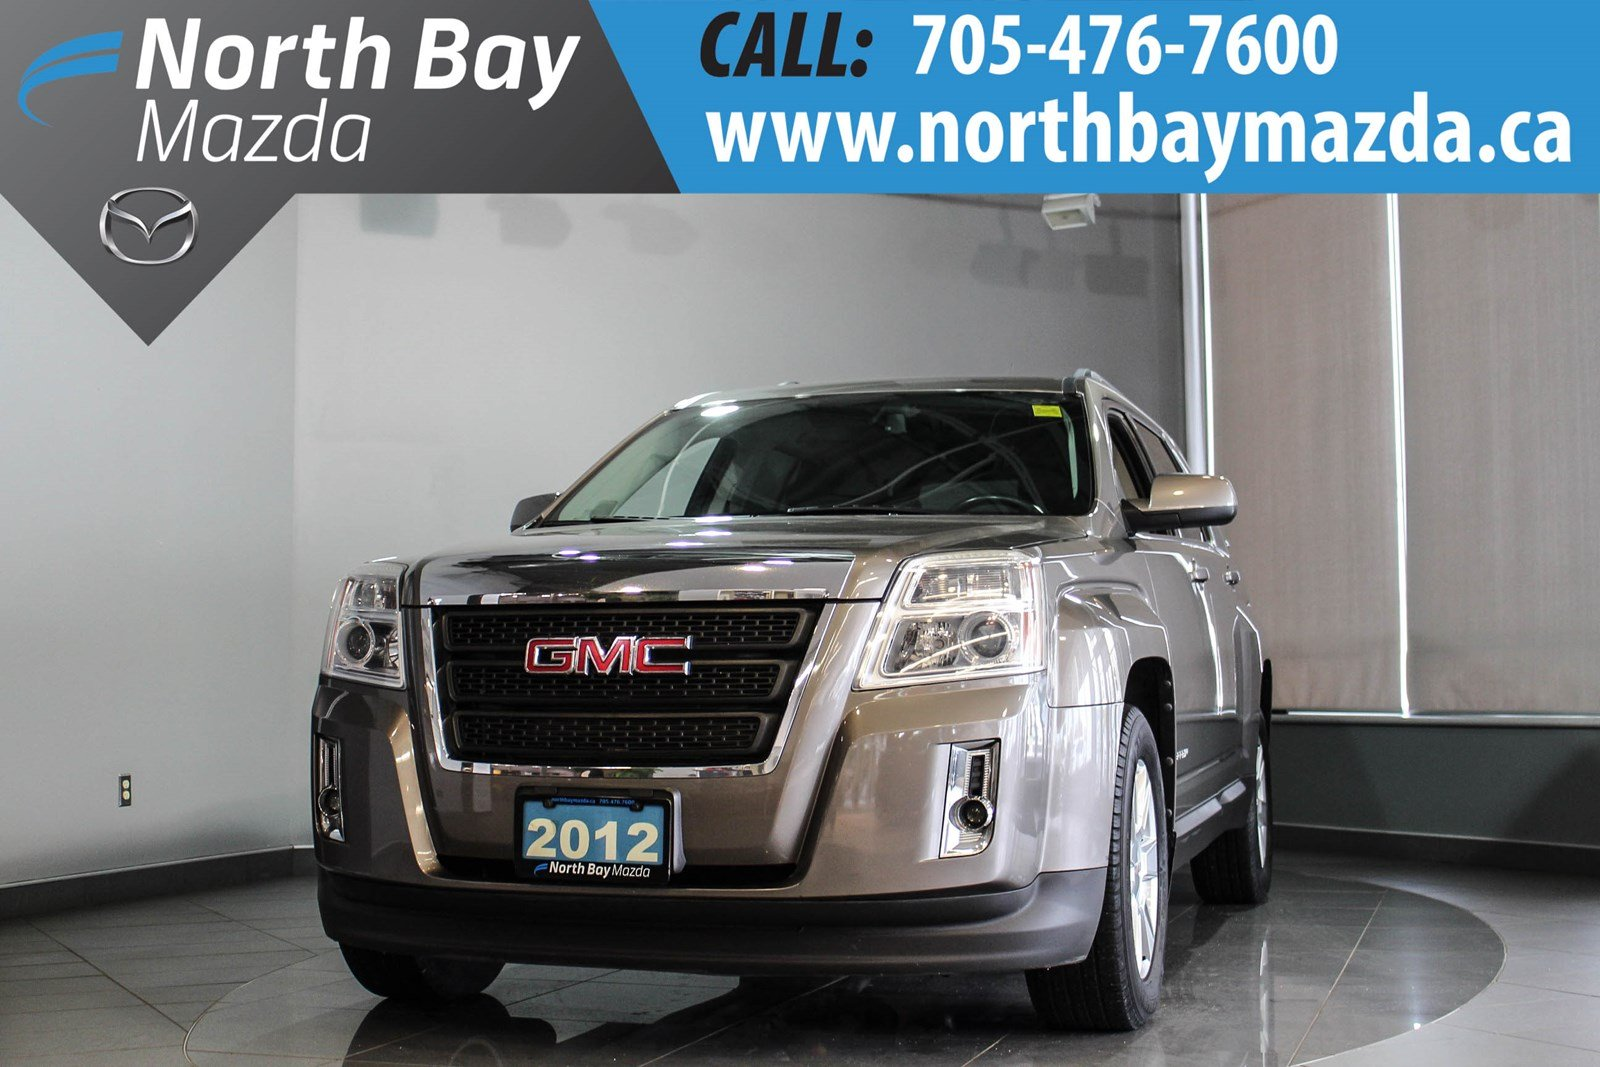 Pre-Owned 2012 GMC Terrain SLE-2 FWD with Heated Seats, New Winter